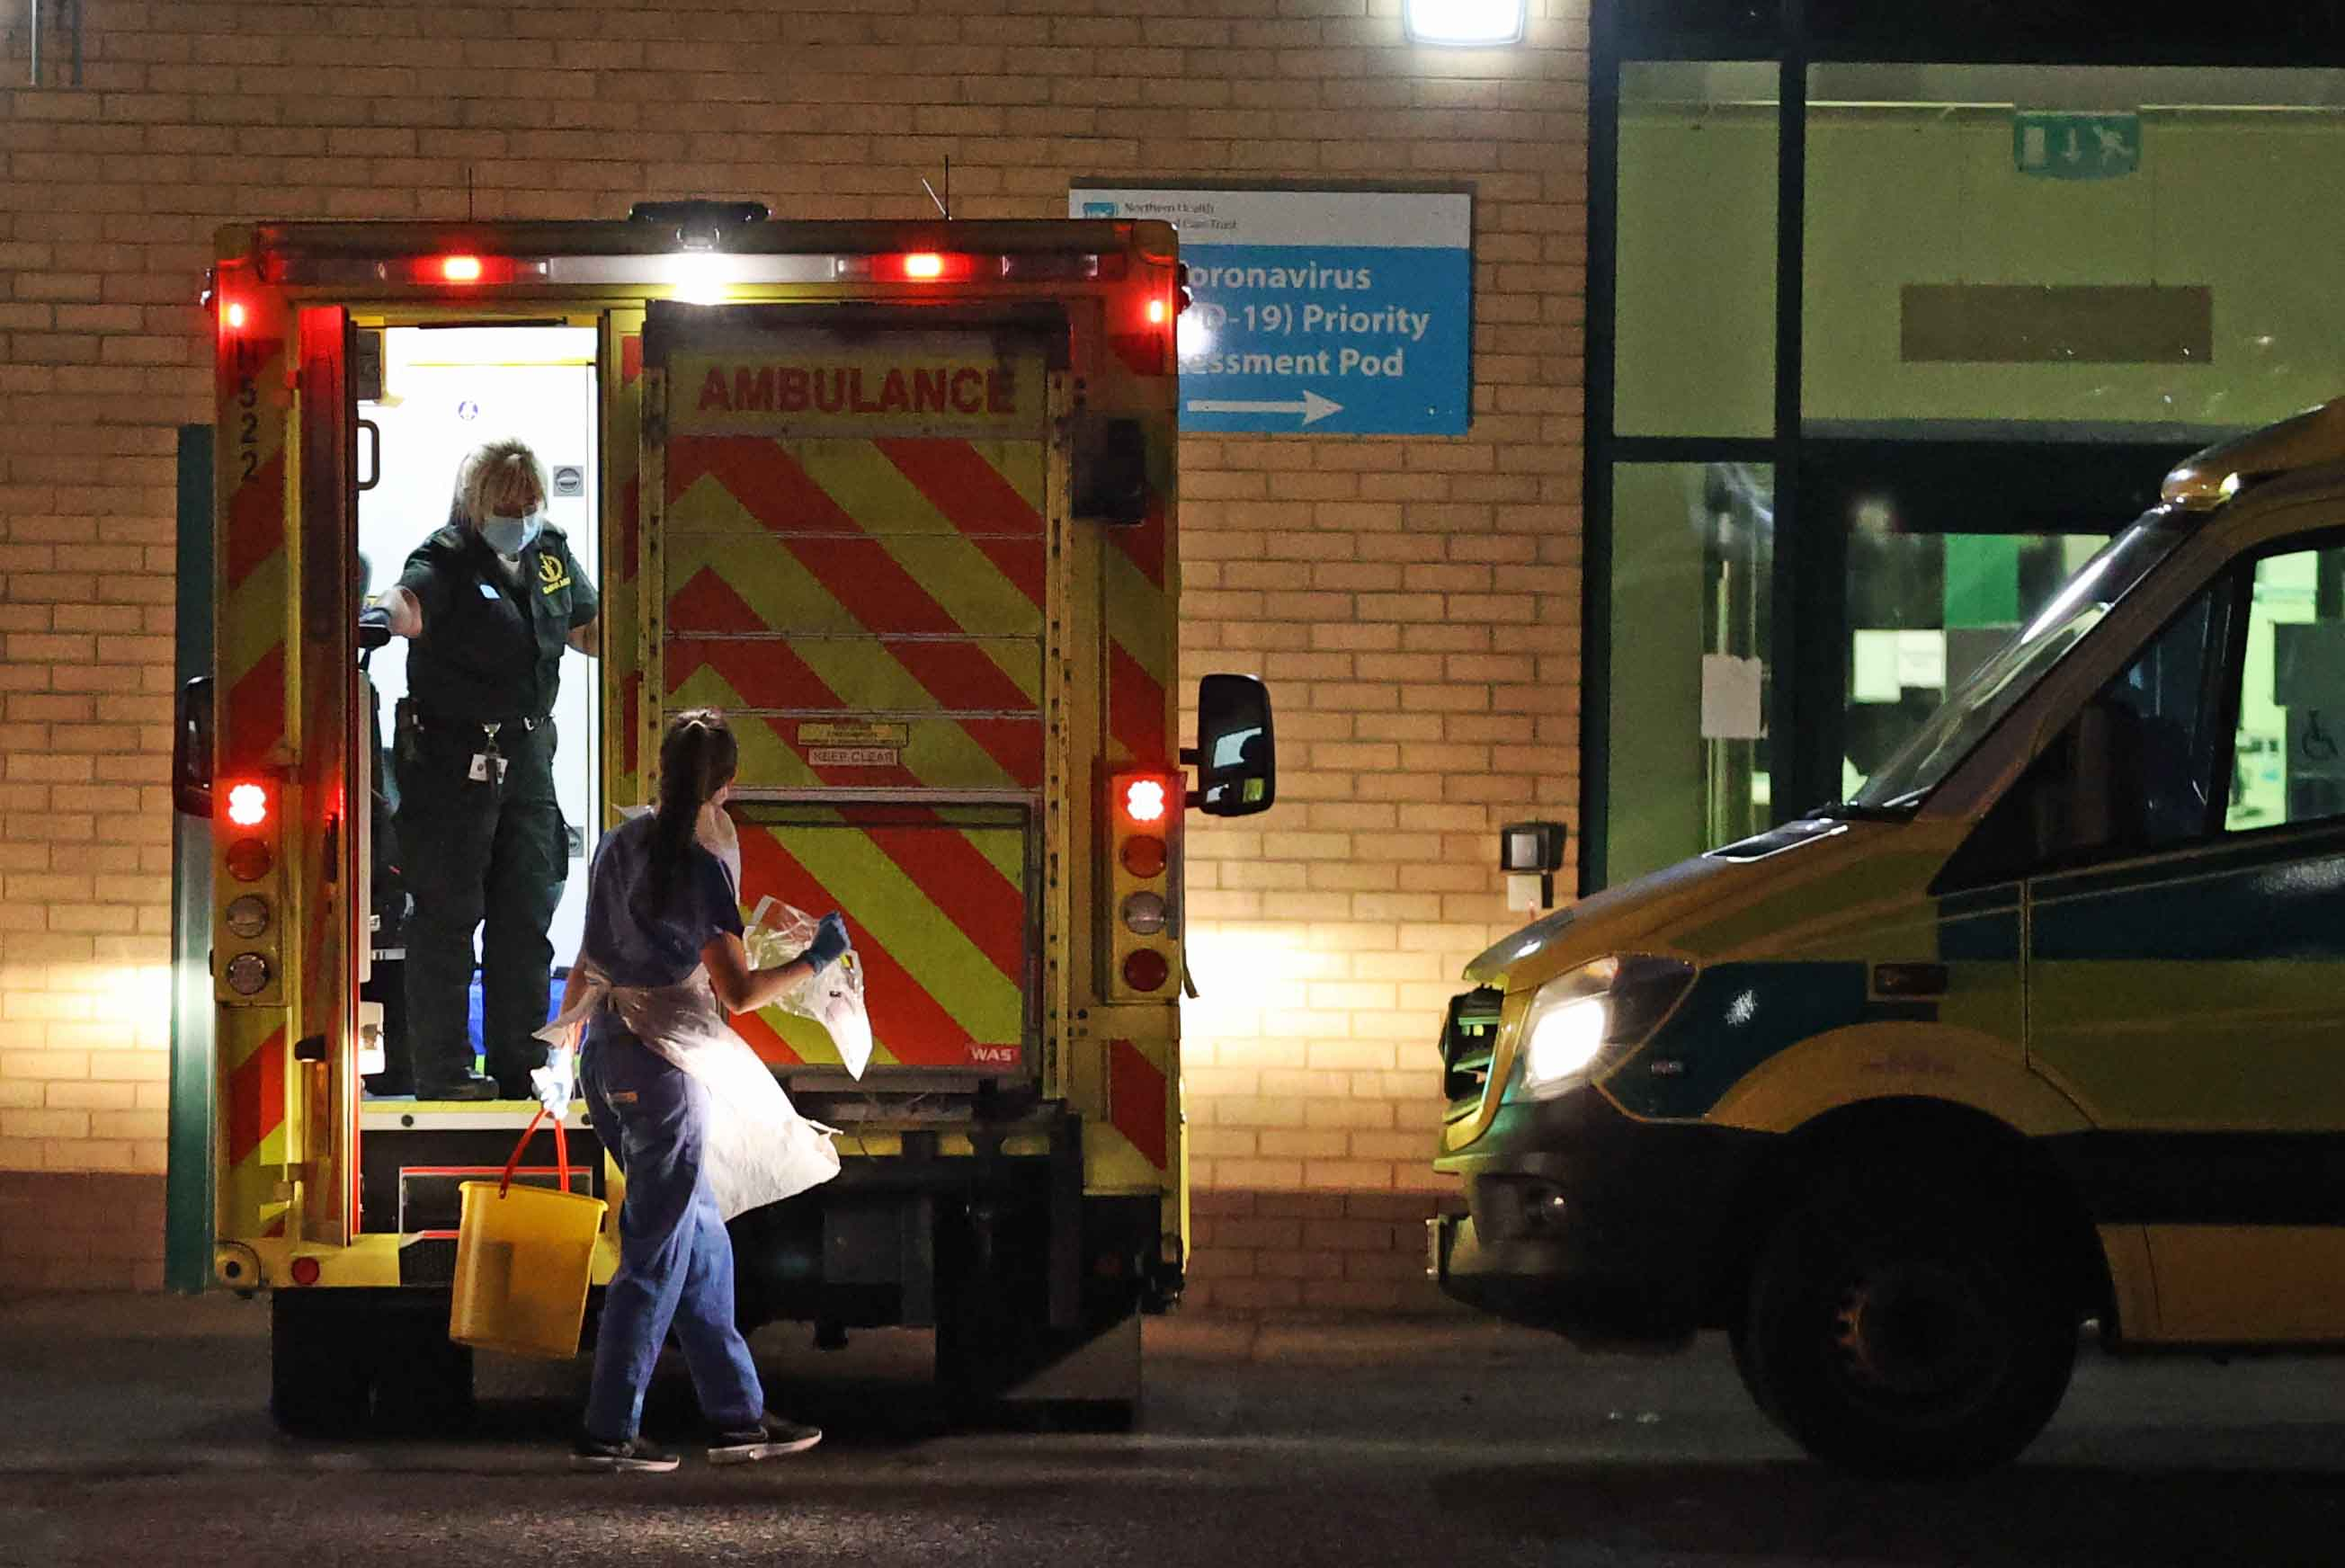 Medical staff attend to a patient in anambulance at Antrim Area Hospital inNorthernIreland on Tuesday, December 15.